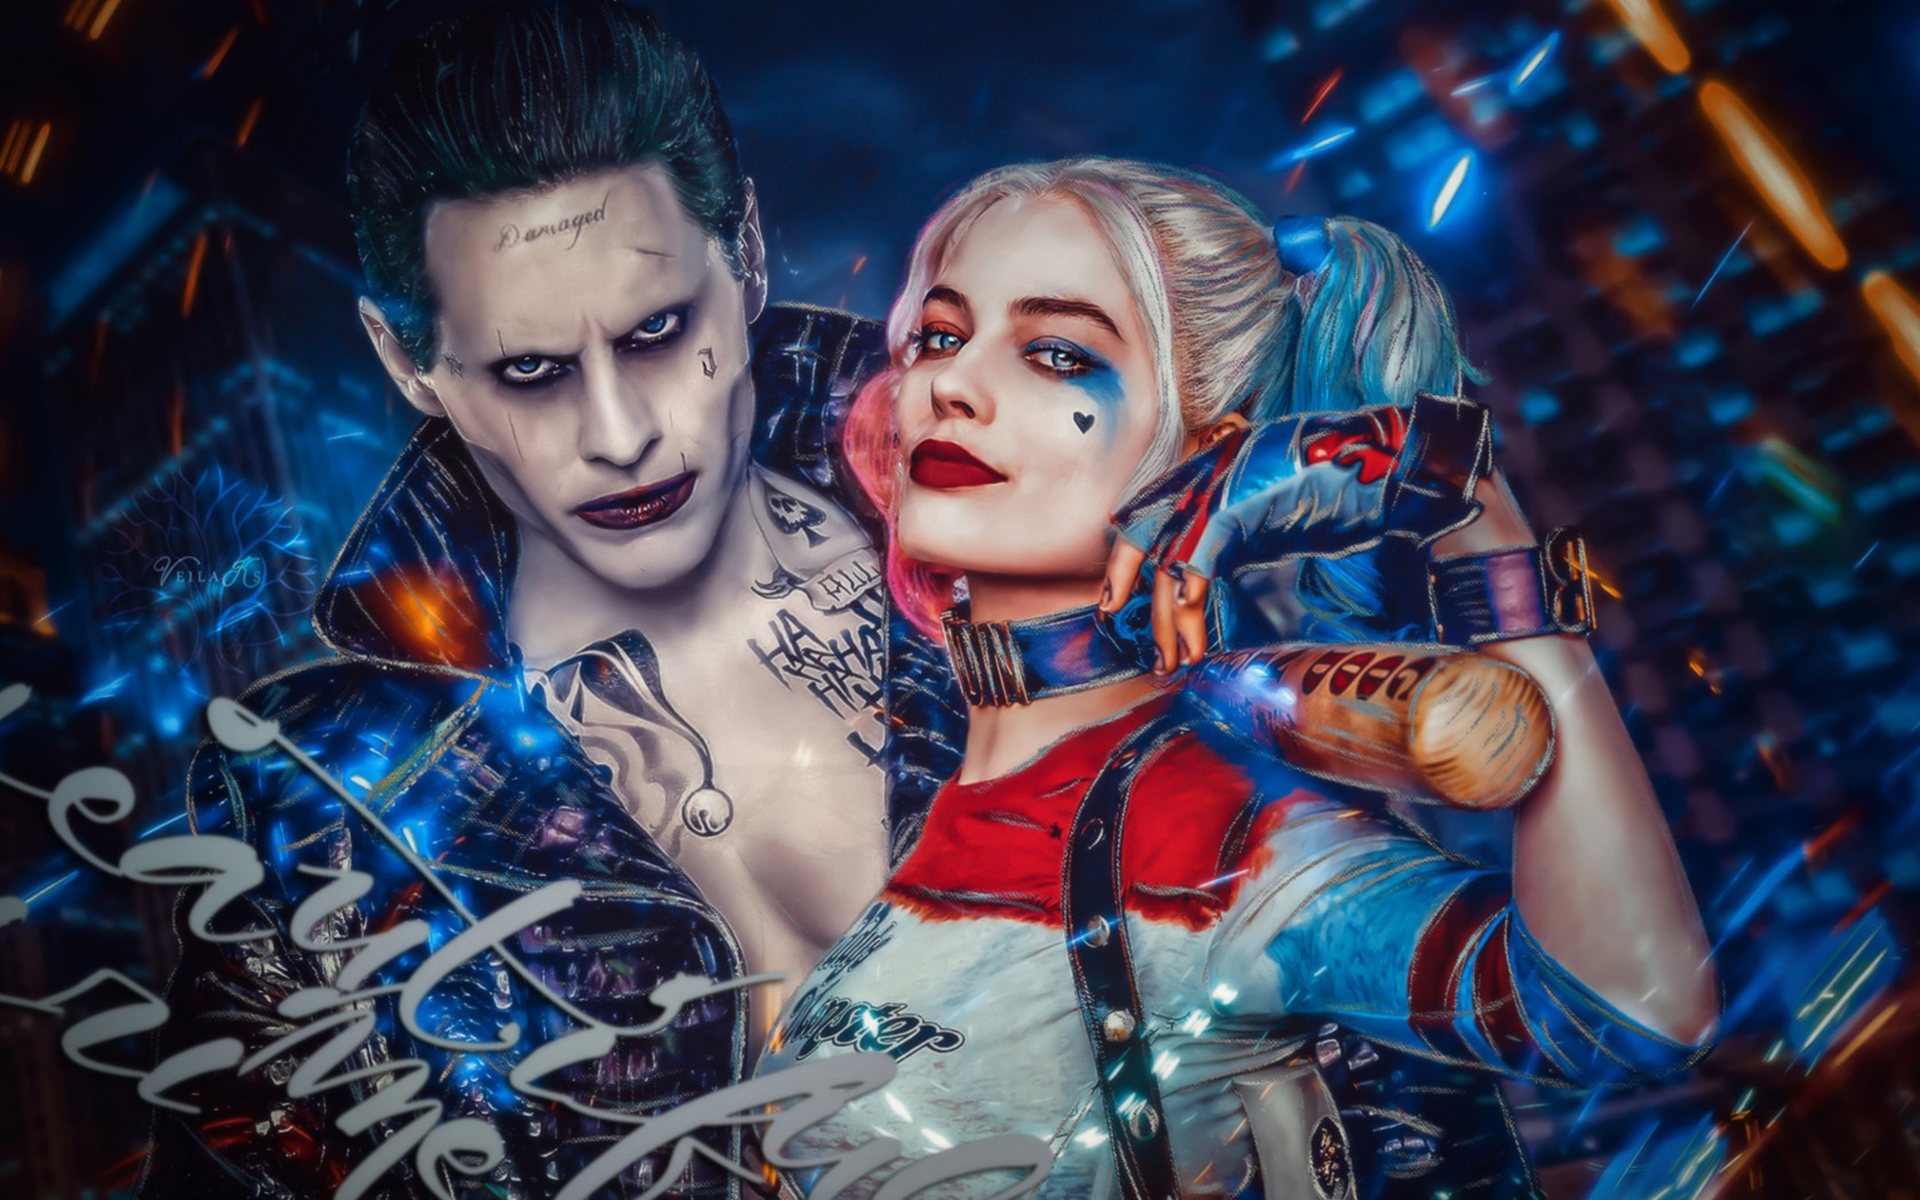 suicide-squad-the-joker-and-harley-quinn-1920x1200-wide-wallpapers_net.jpg